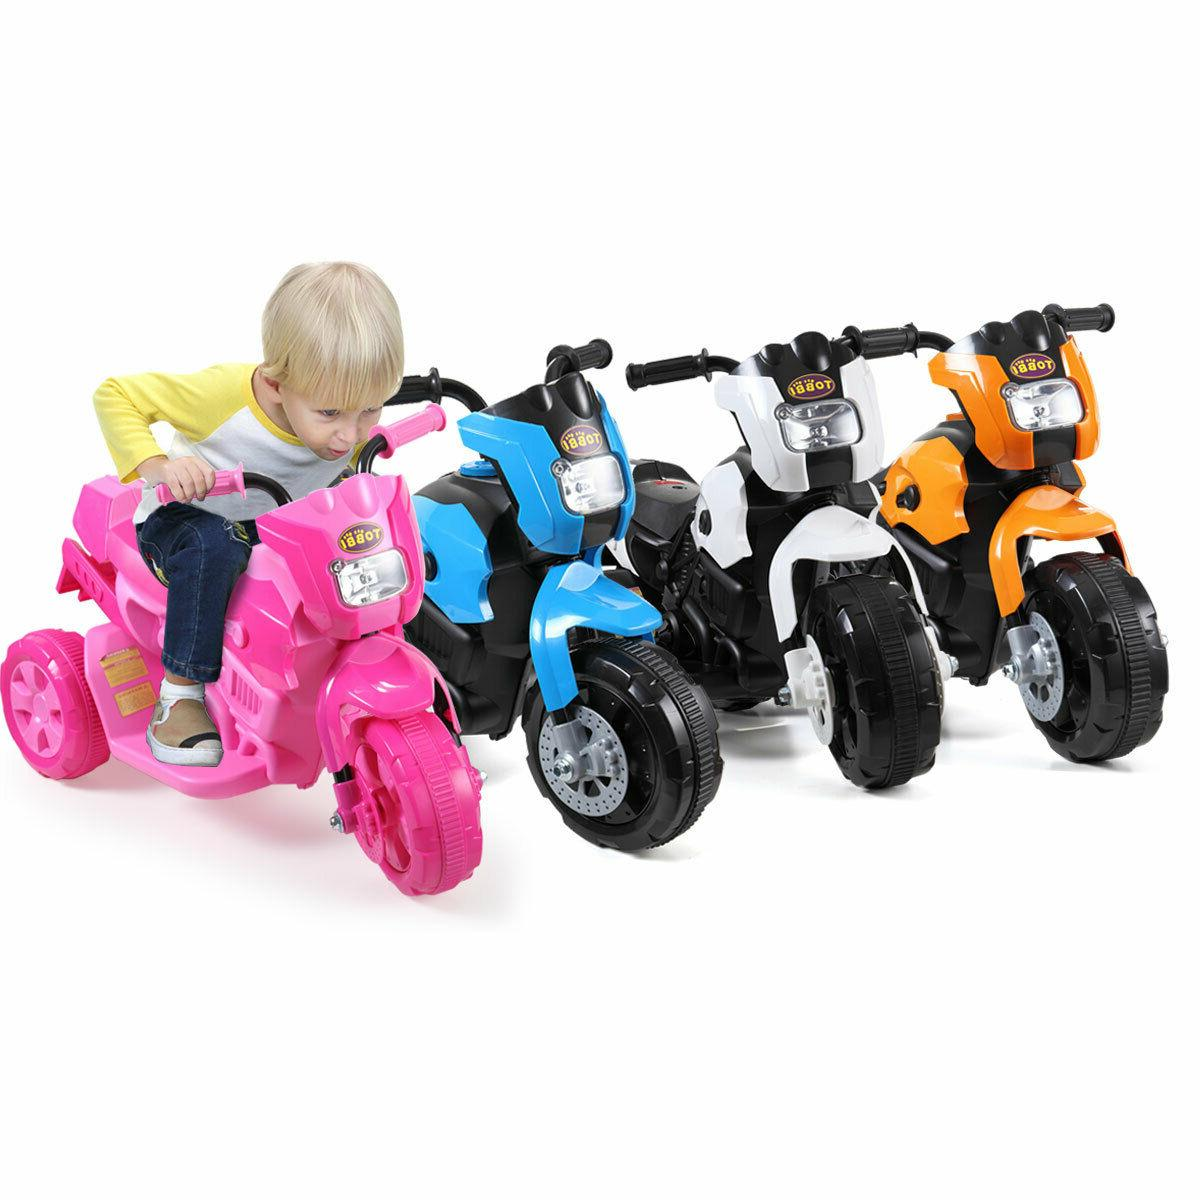 Electric Motorcycle Kids On Toy Battery 3 Wheels 4